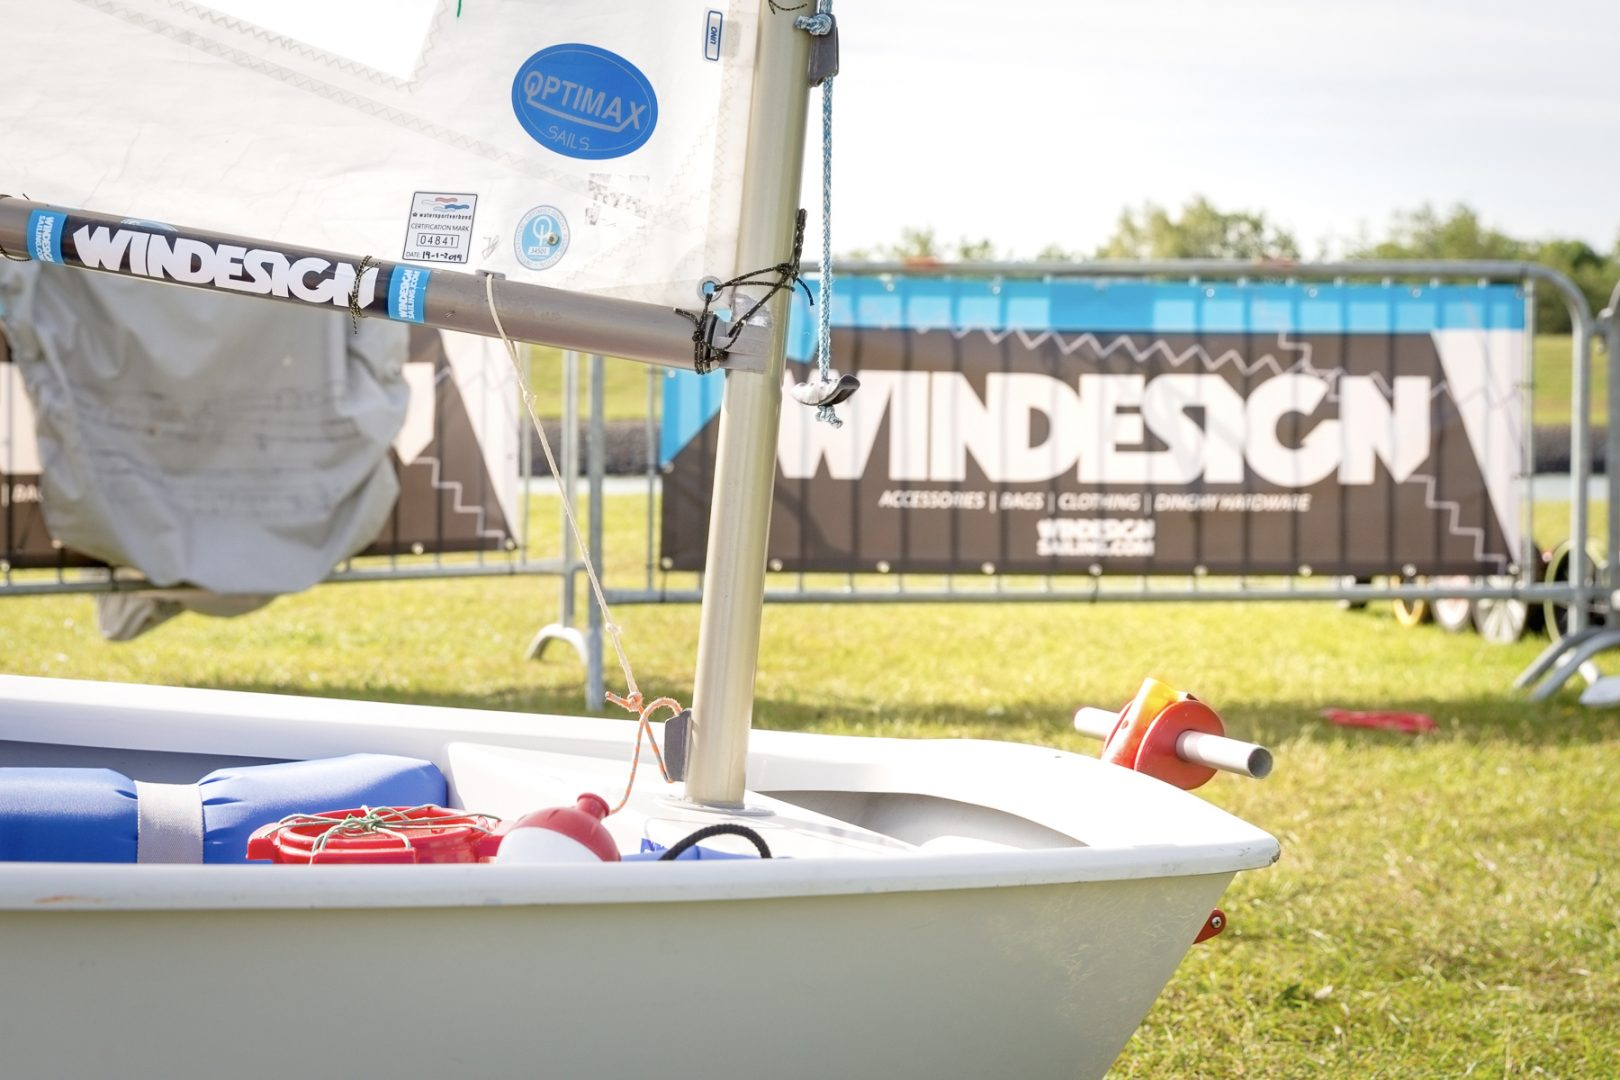 Less plastic Windesign and Dutch Youth Regatta